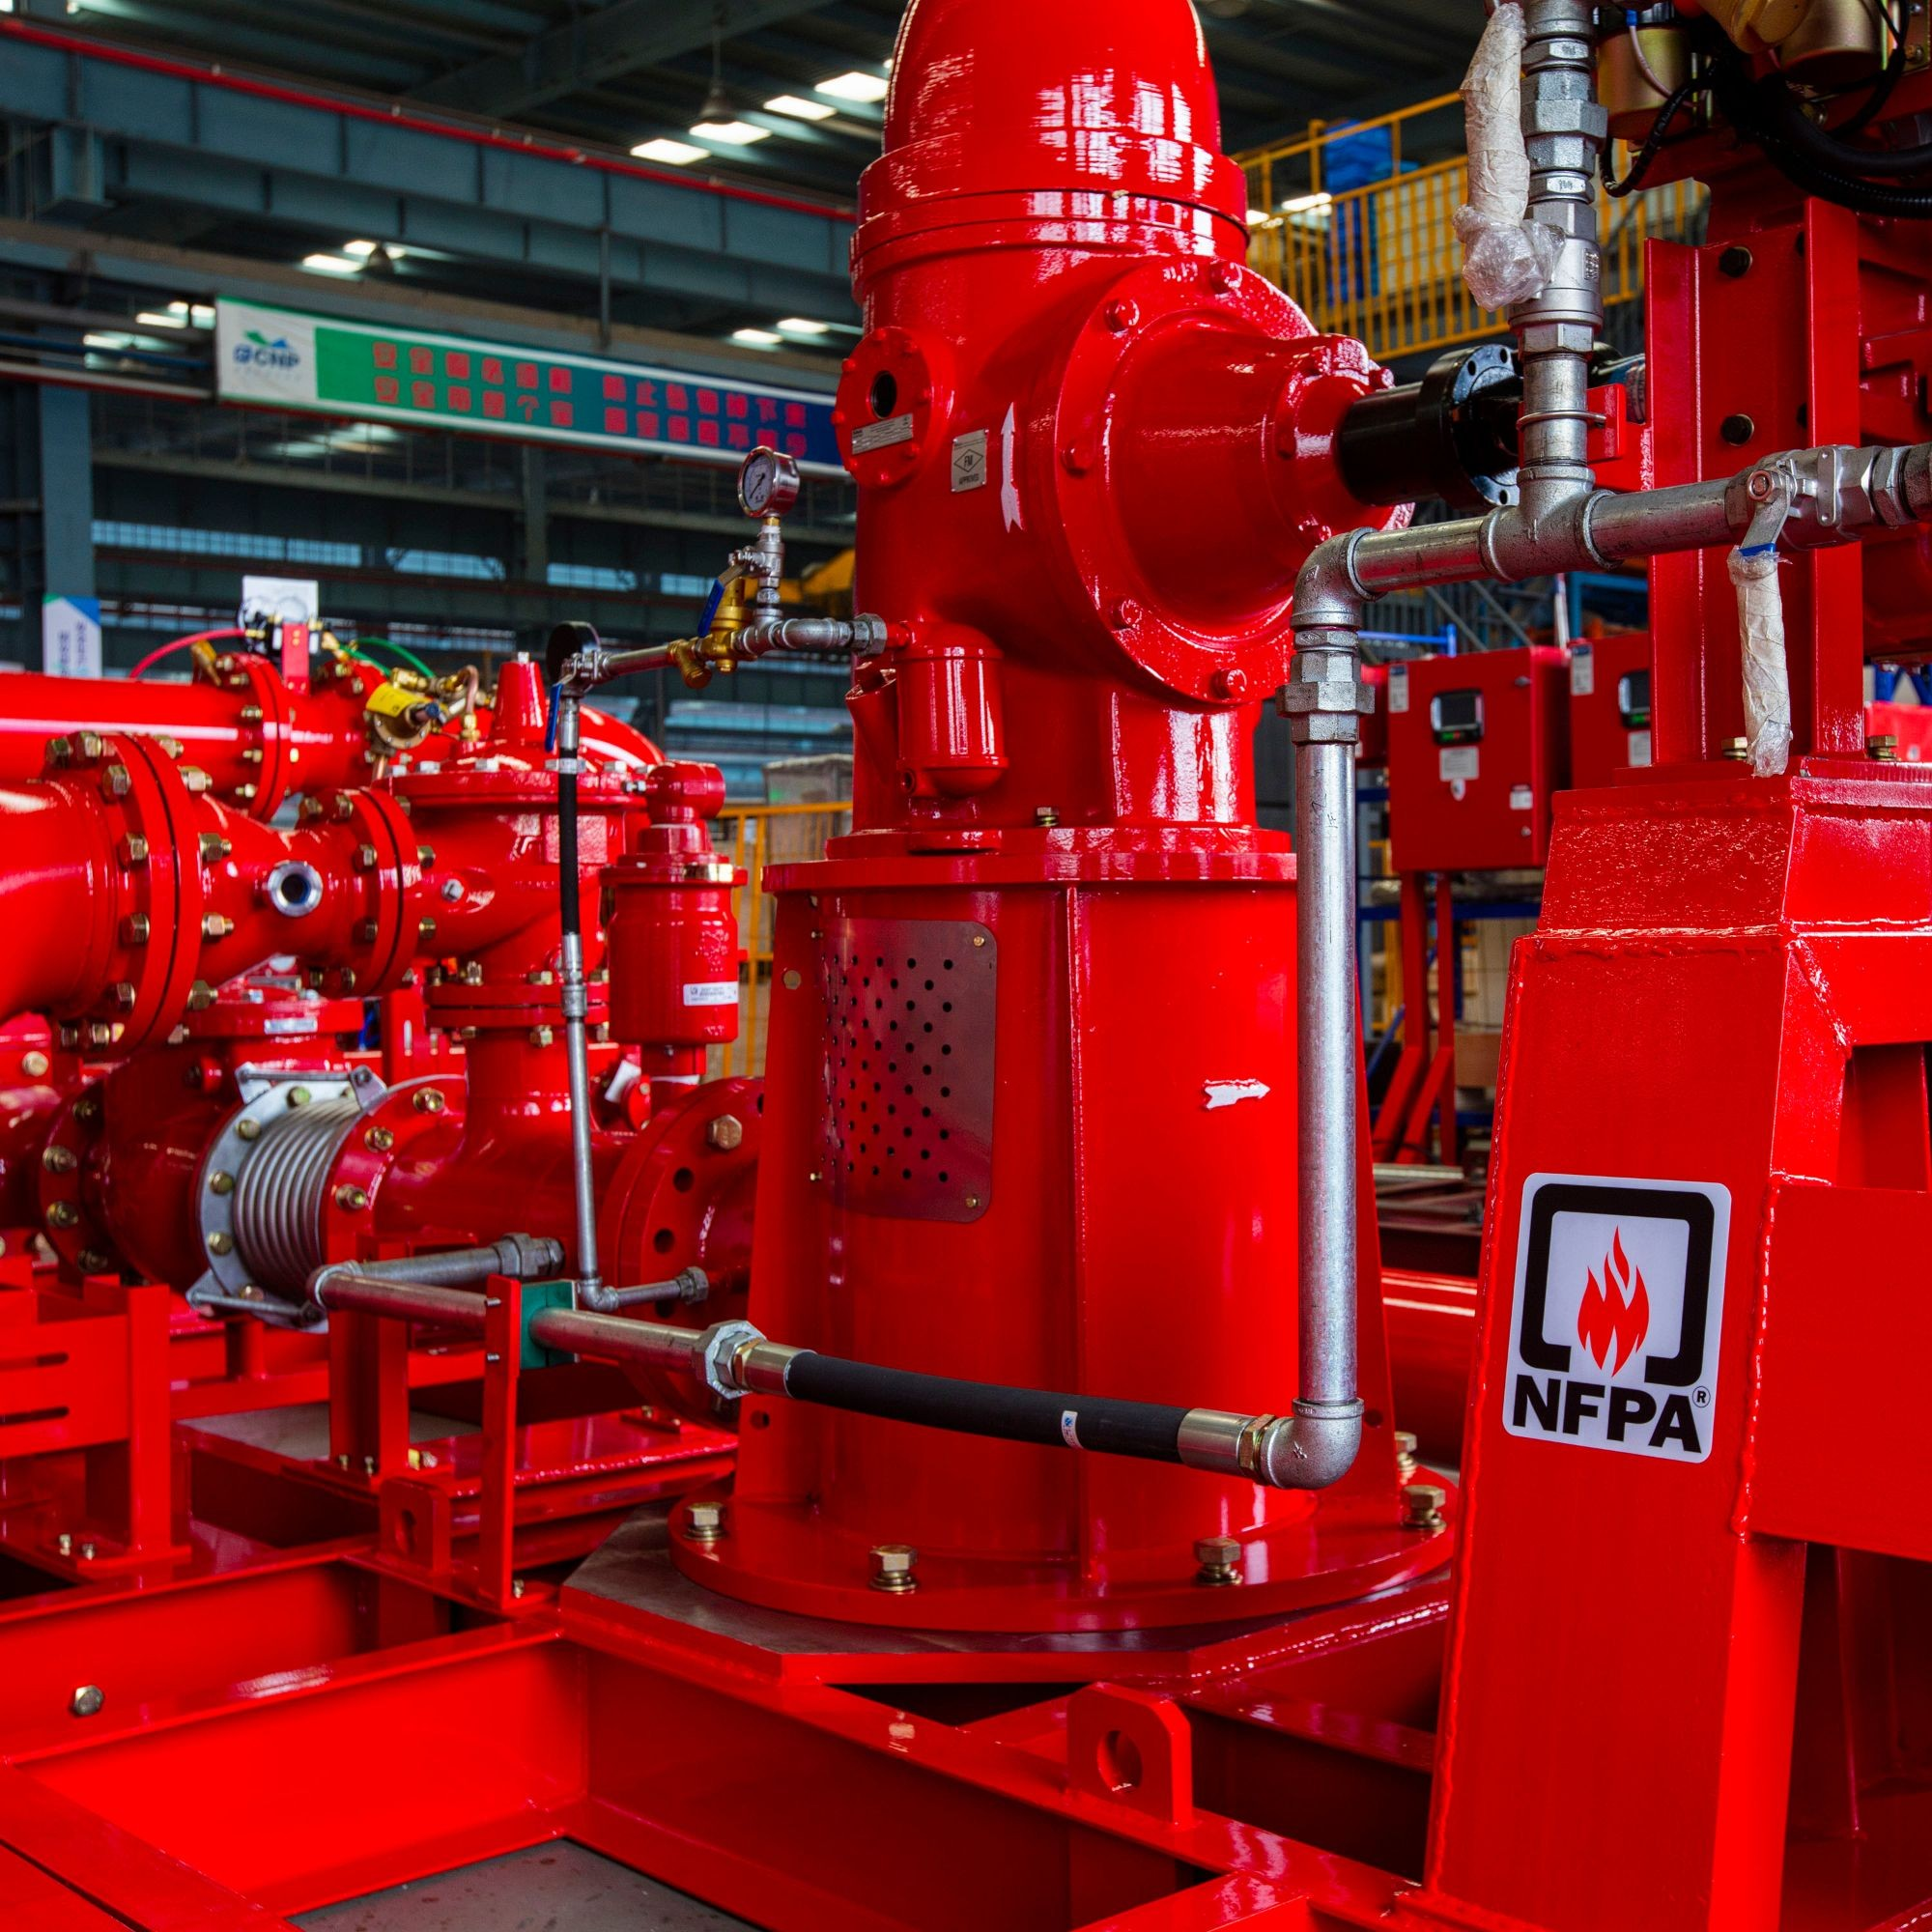 Vertical Turbine Fire Pump Group